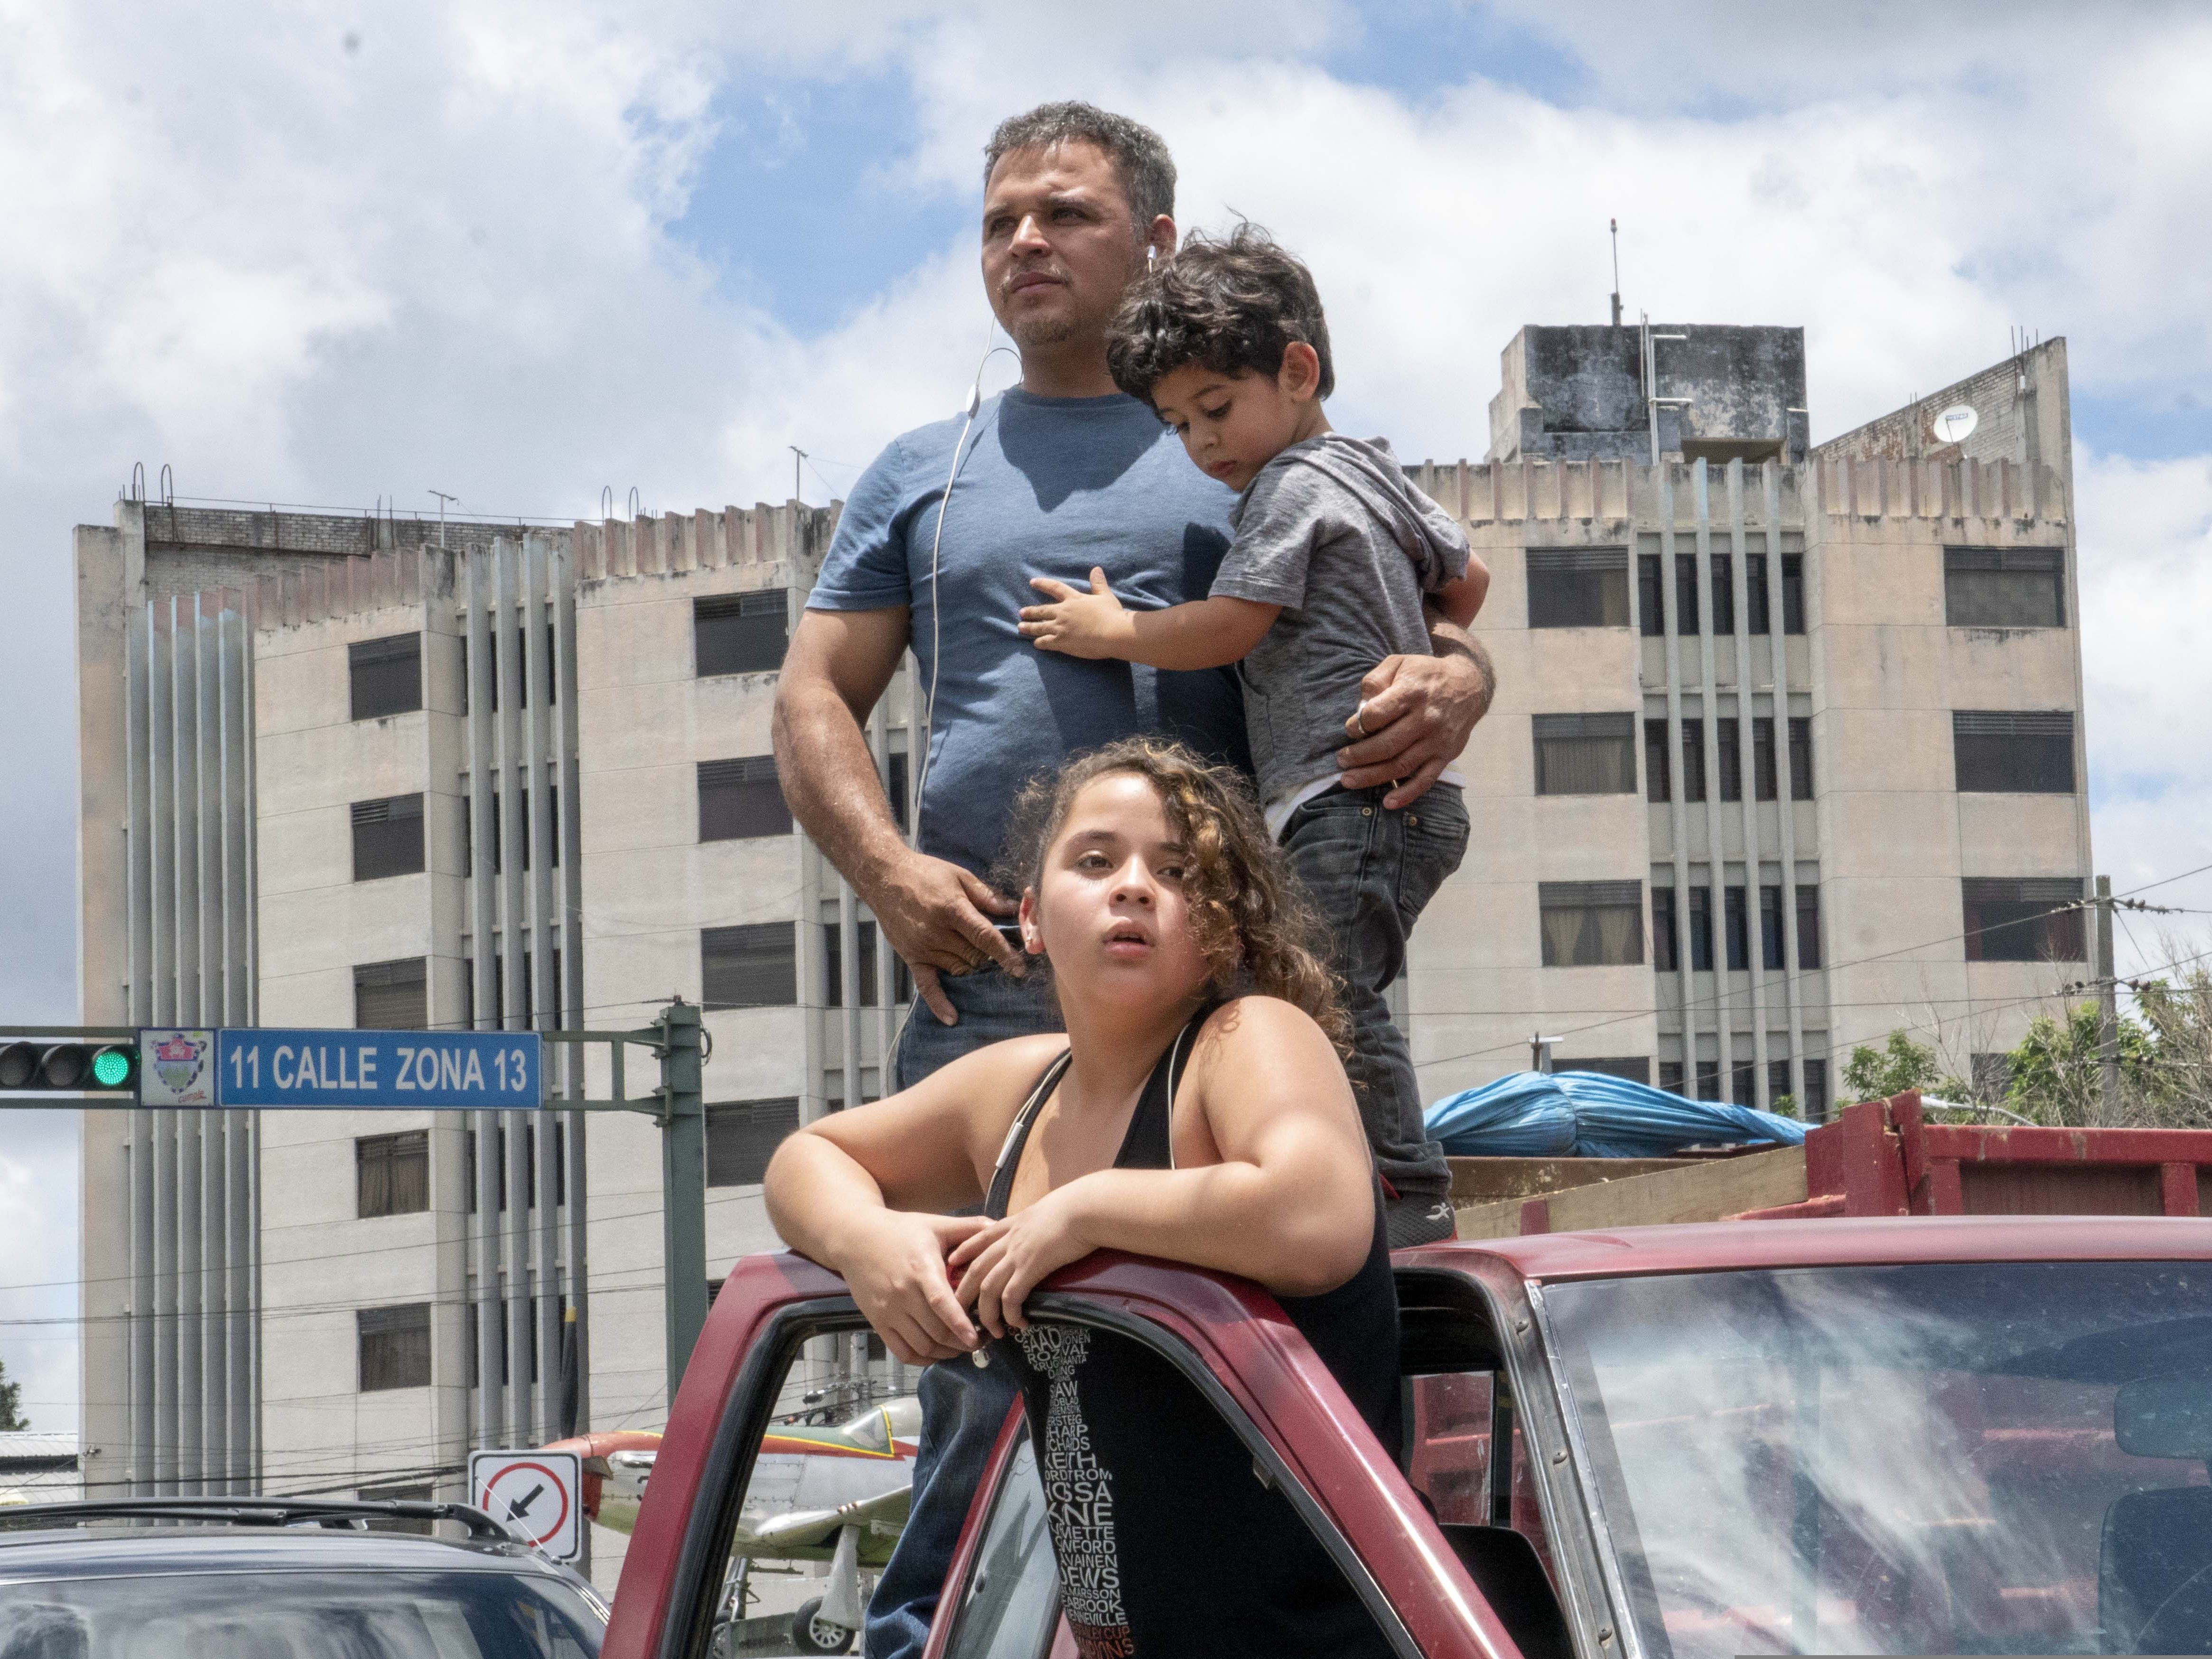 Jose Antonio Sandoval, 37, a car mechanic, waits for his wife Sandra Patricia Castaneda, 35, to arrive after she was deported from the U.S. to Guatemala. He drove to the Guatemalan capital with their 13-year-old daughter, Emily, and 2-year-old son, Abdiel. Their oldest son, Eduardo, is in Texas after passing a credible fear interview.